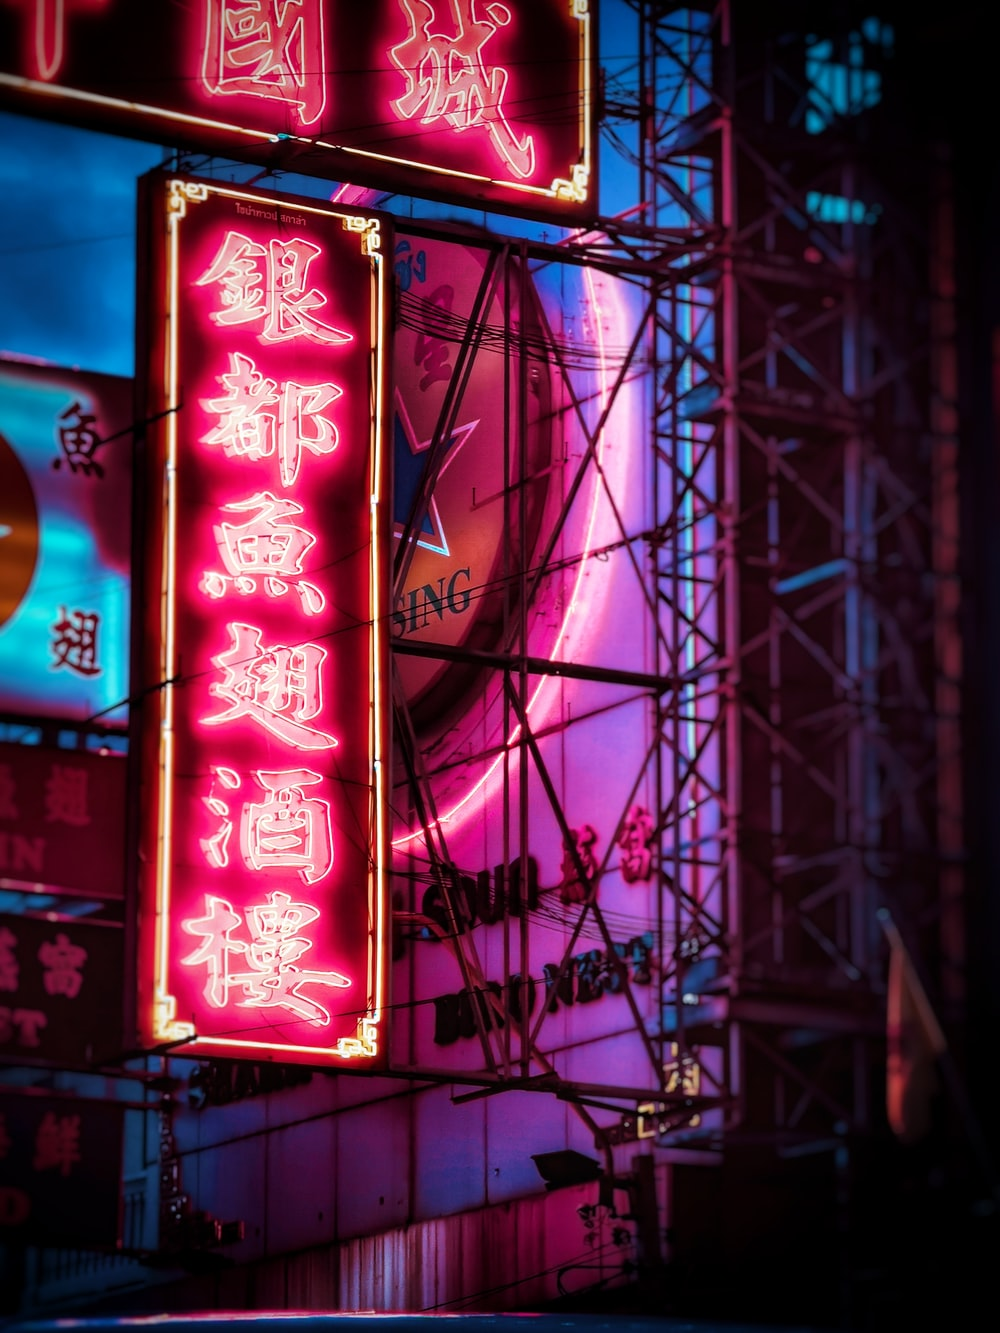 Neon Vibe Pictures Download Free Images On Unsplash